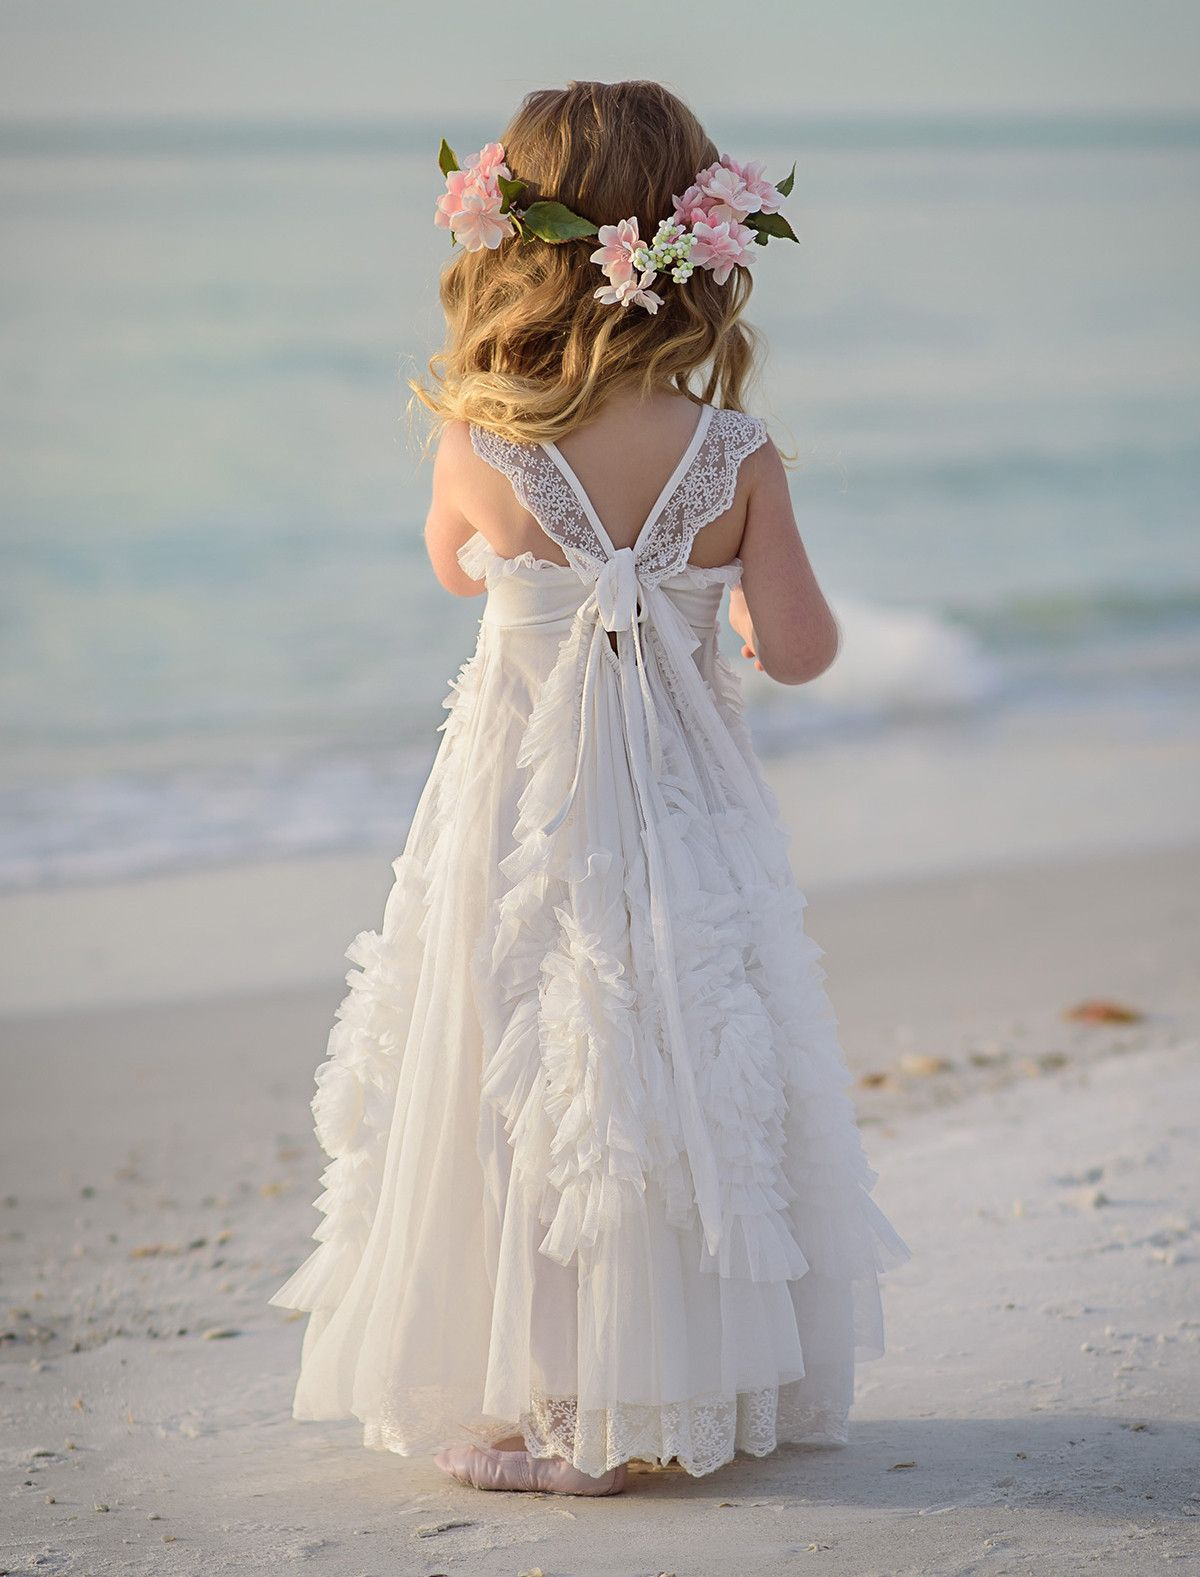 here she glows frock jakob bella pinterest frocks flower girls and flowers. Black Bedroom Furniture Sets. Home Design Ideas